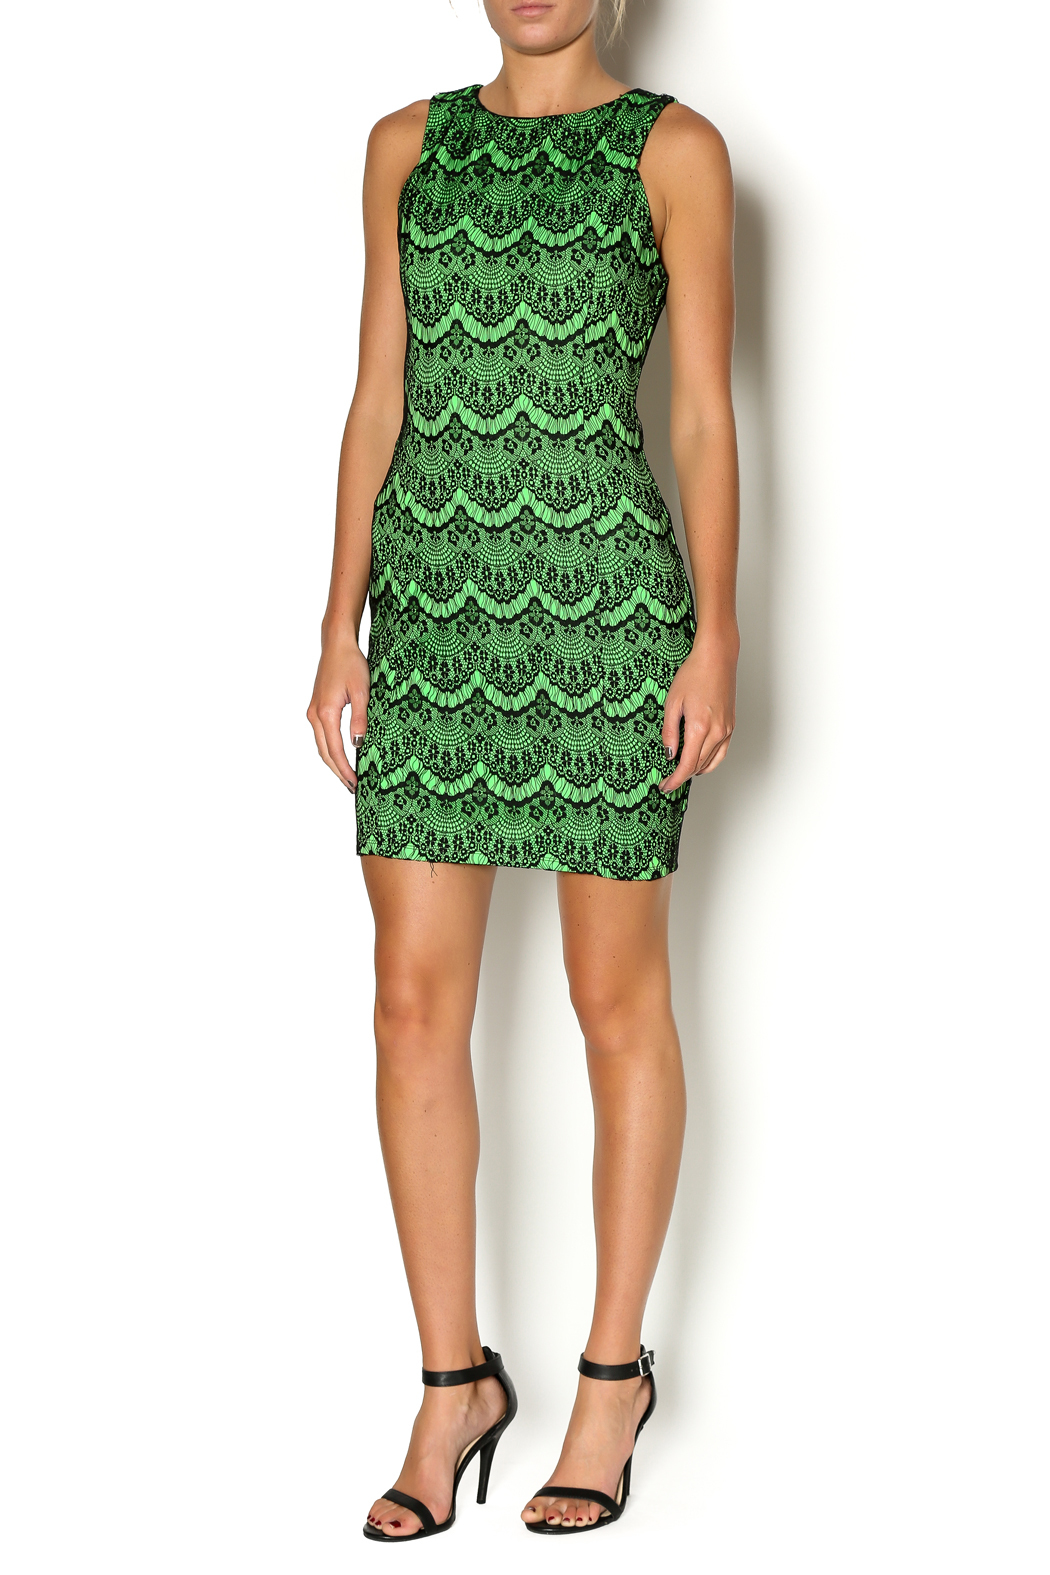 Abby& Taylor Black Lime Lace Dress - Front Full Image